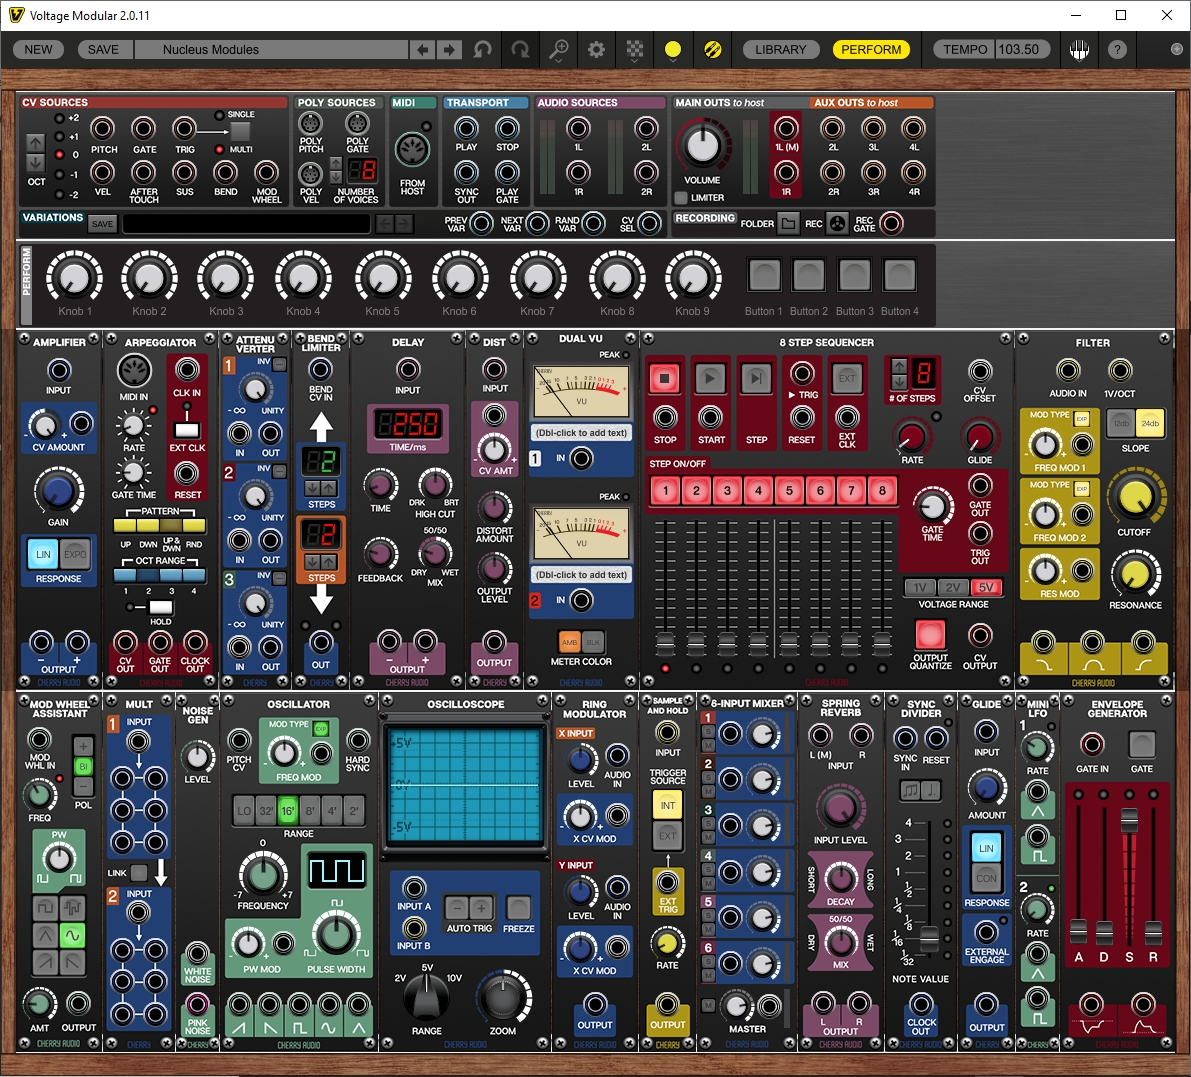 Voltage Modular 2.0 – more features, more modules, more friendly – plus how to use it, free